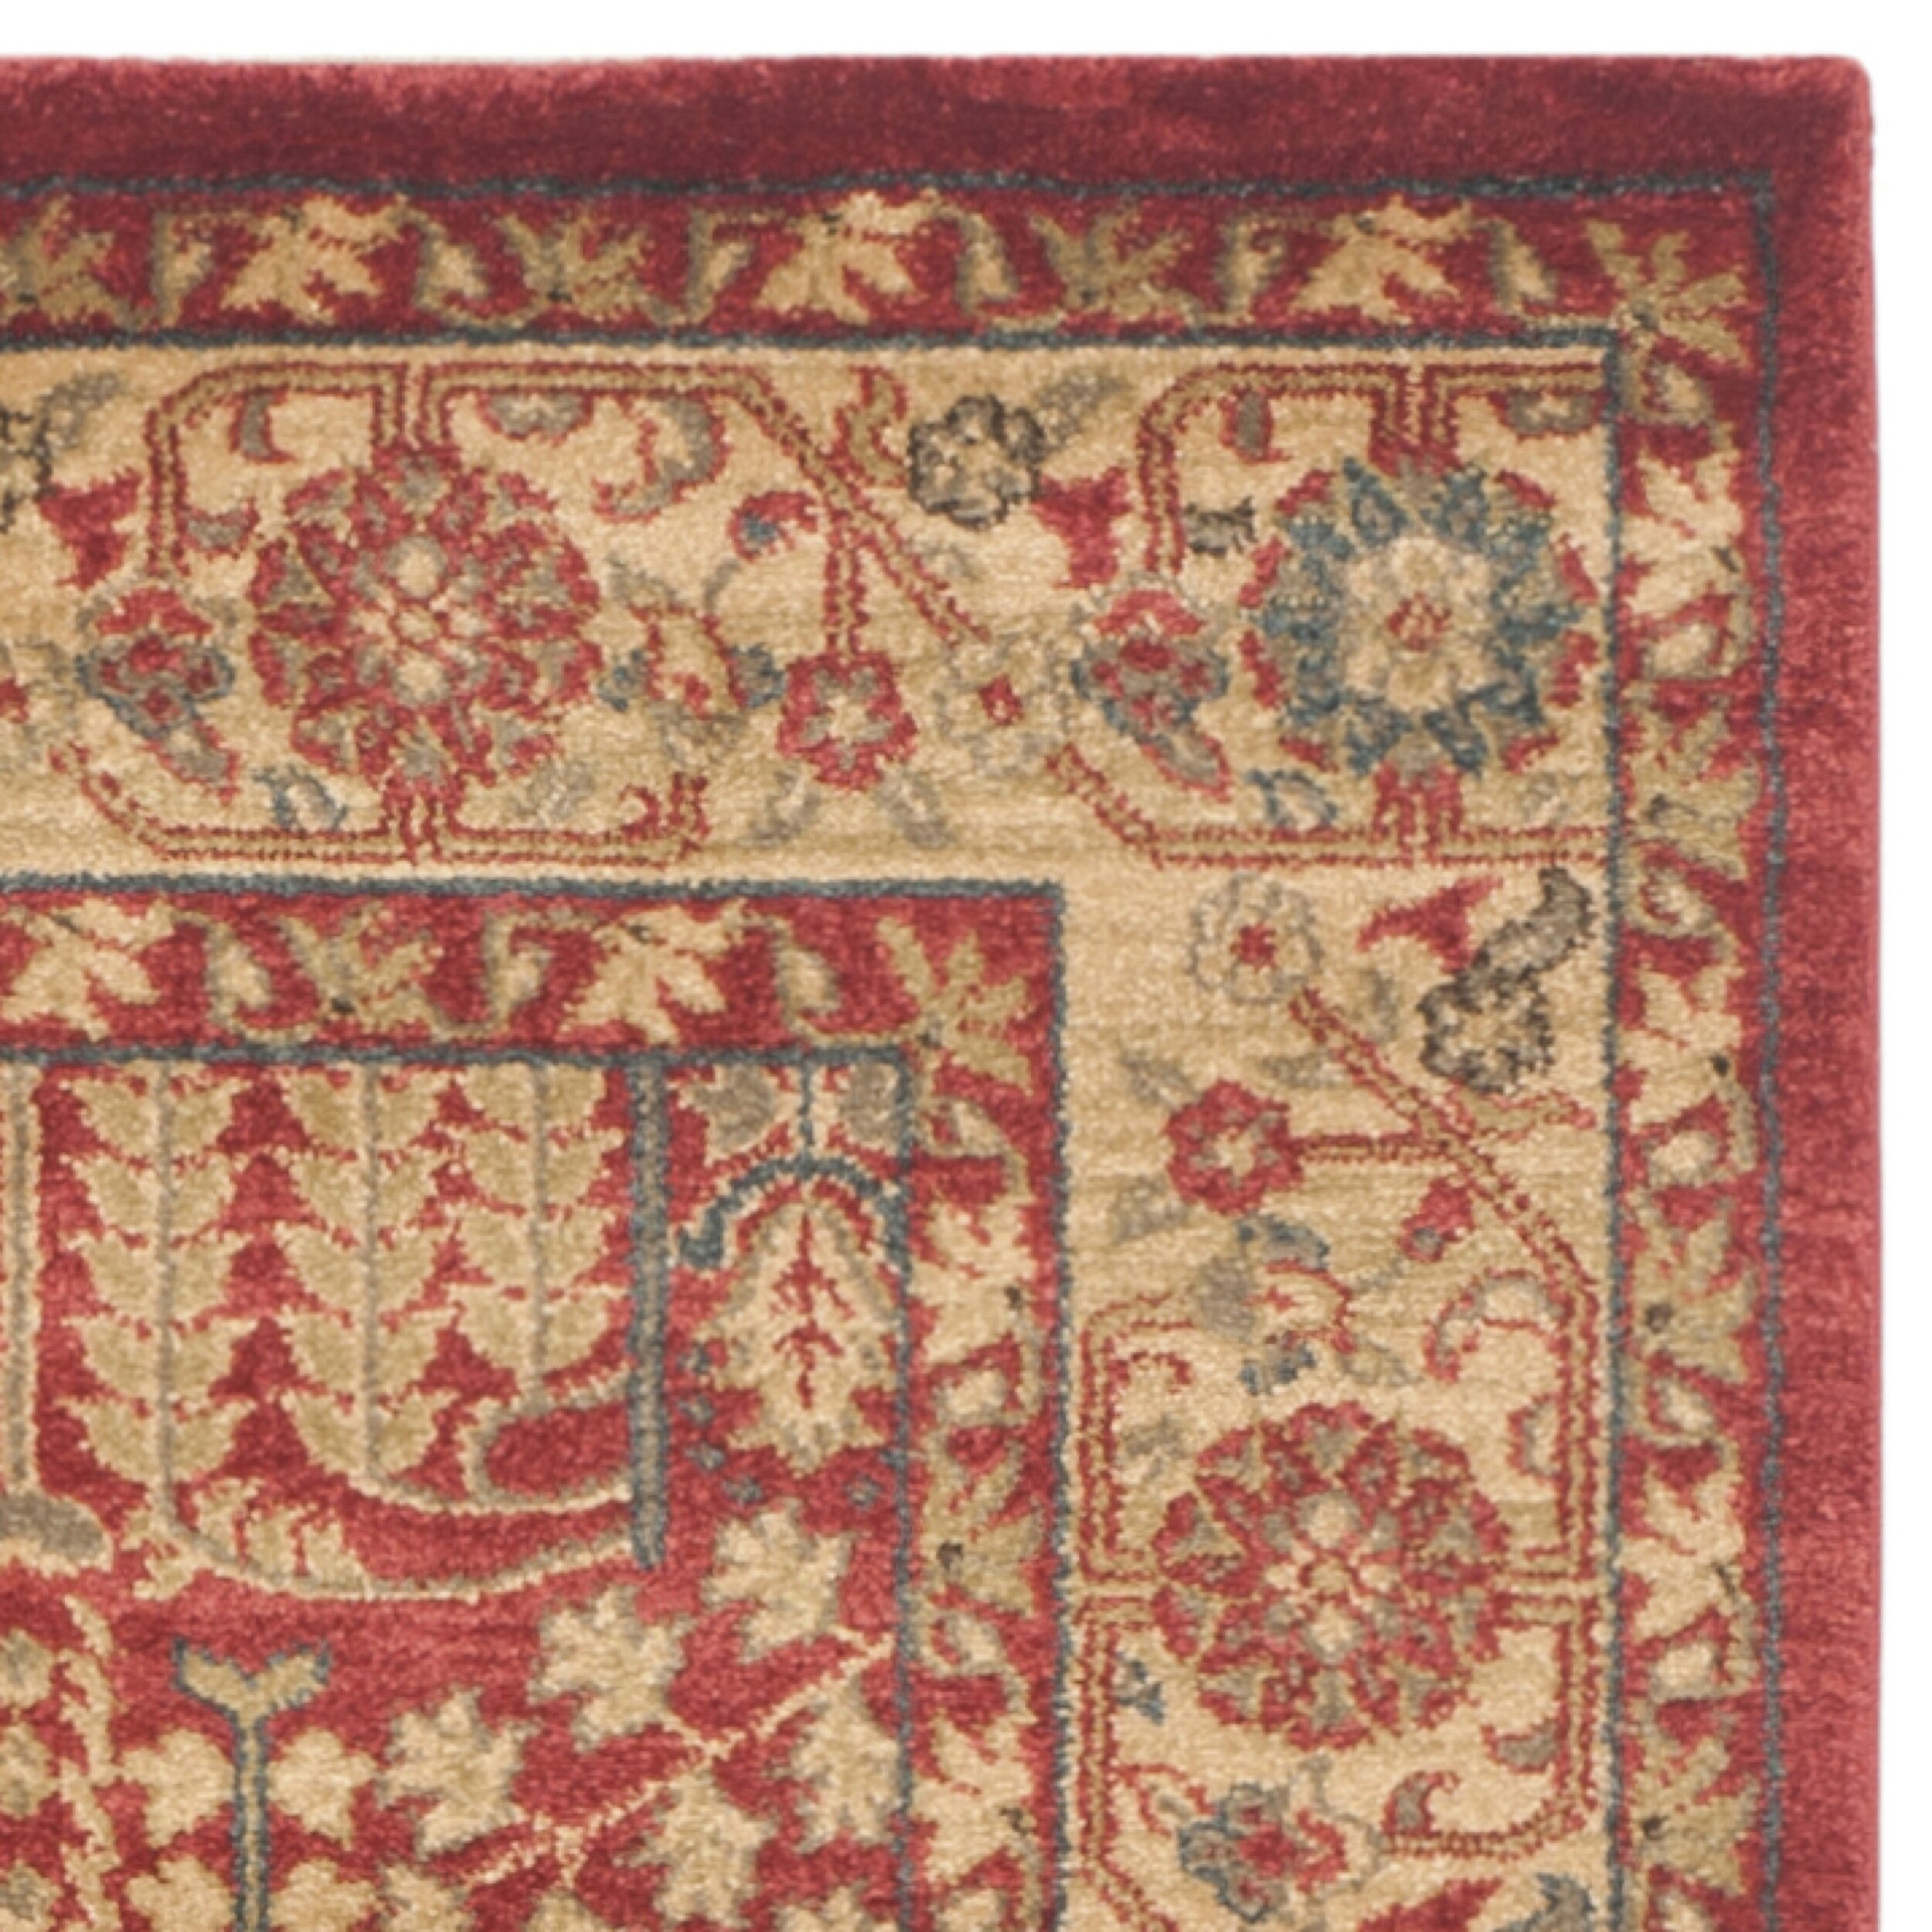 safavieh mahal red natural area rug reviews wayfair